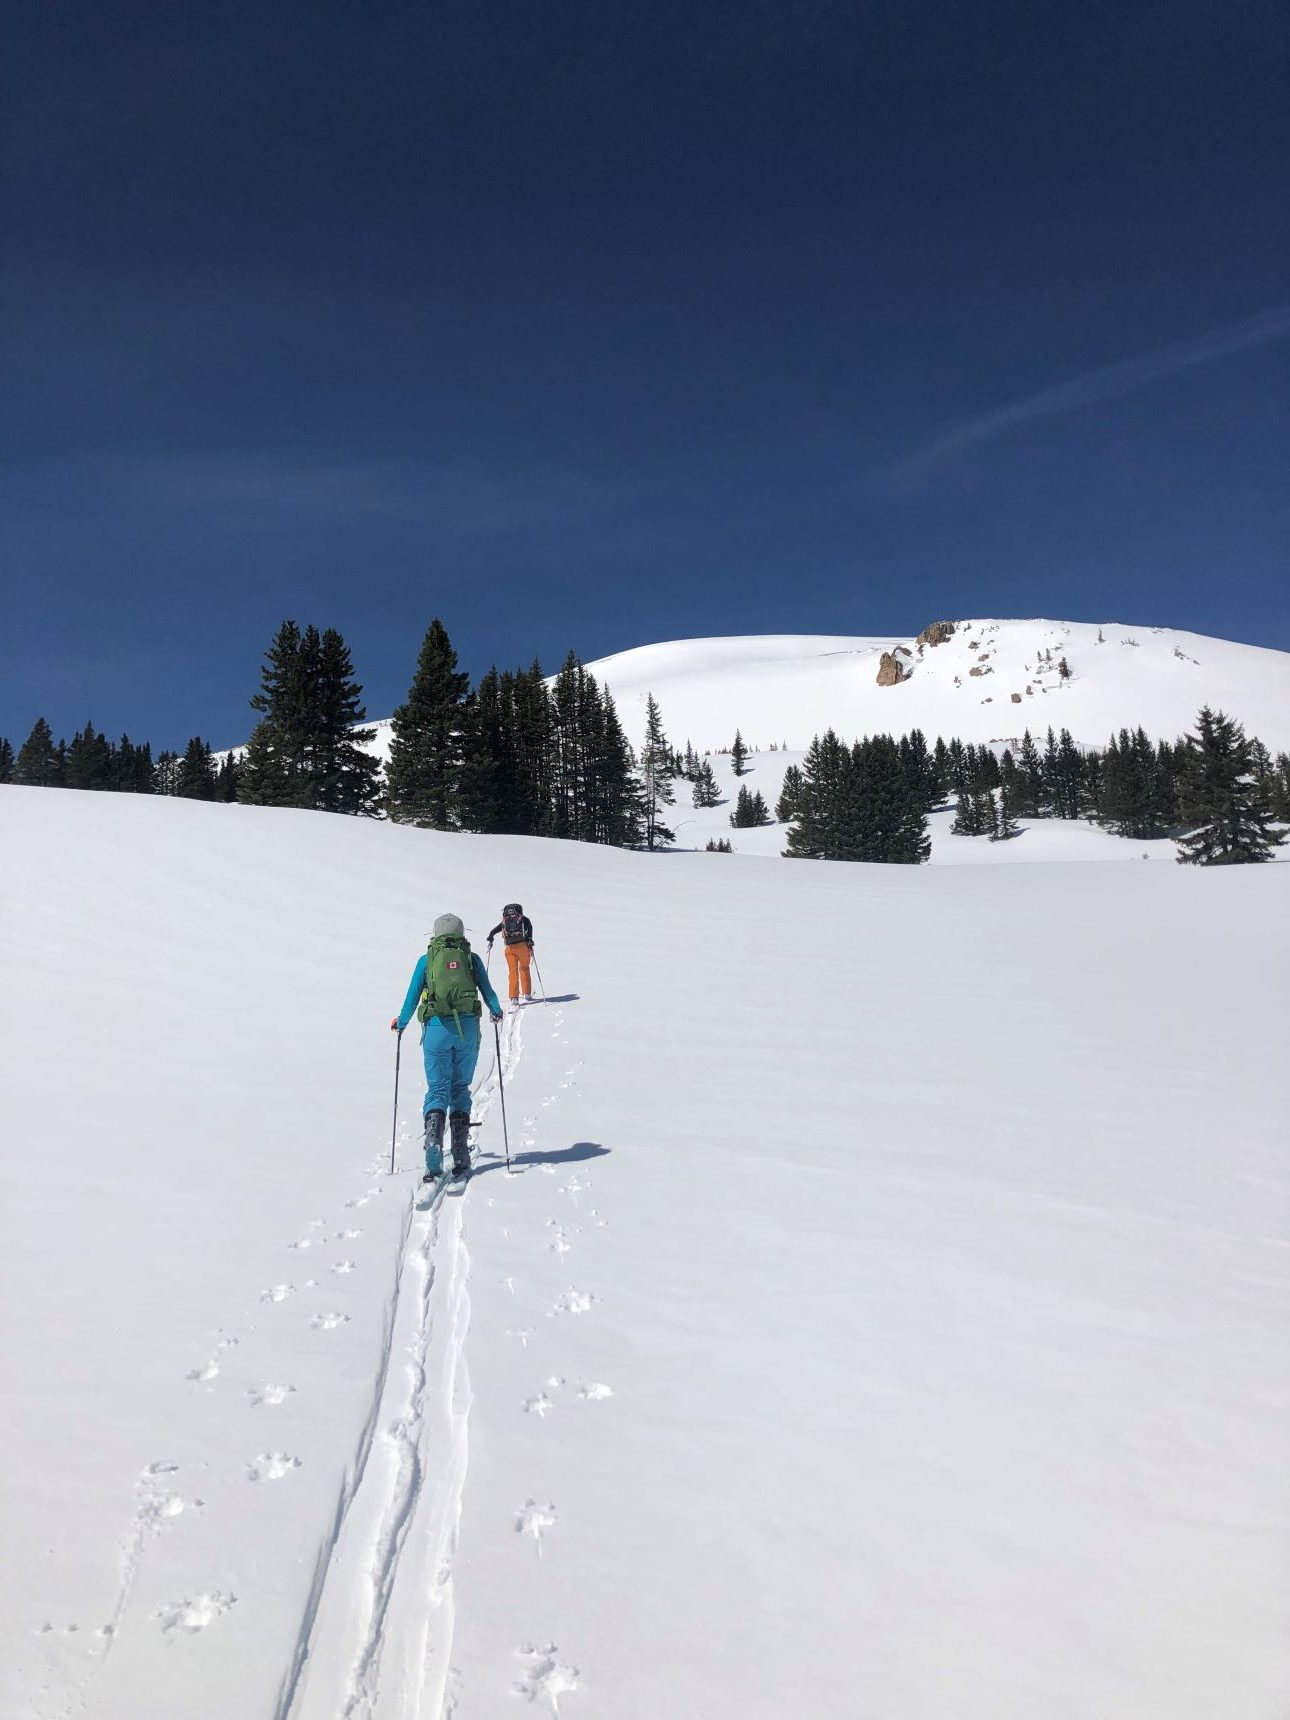 Ten Tips for Getting Into Backcountry Skiing